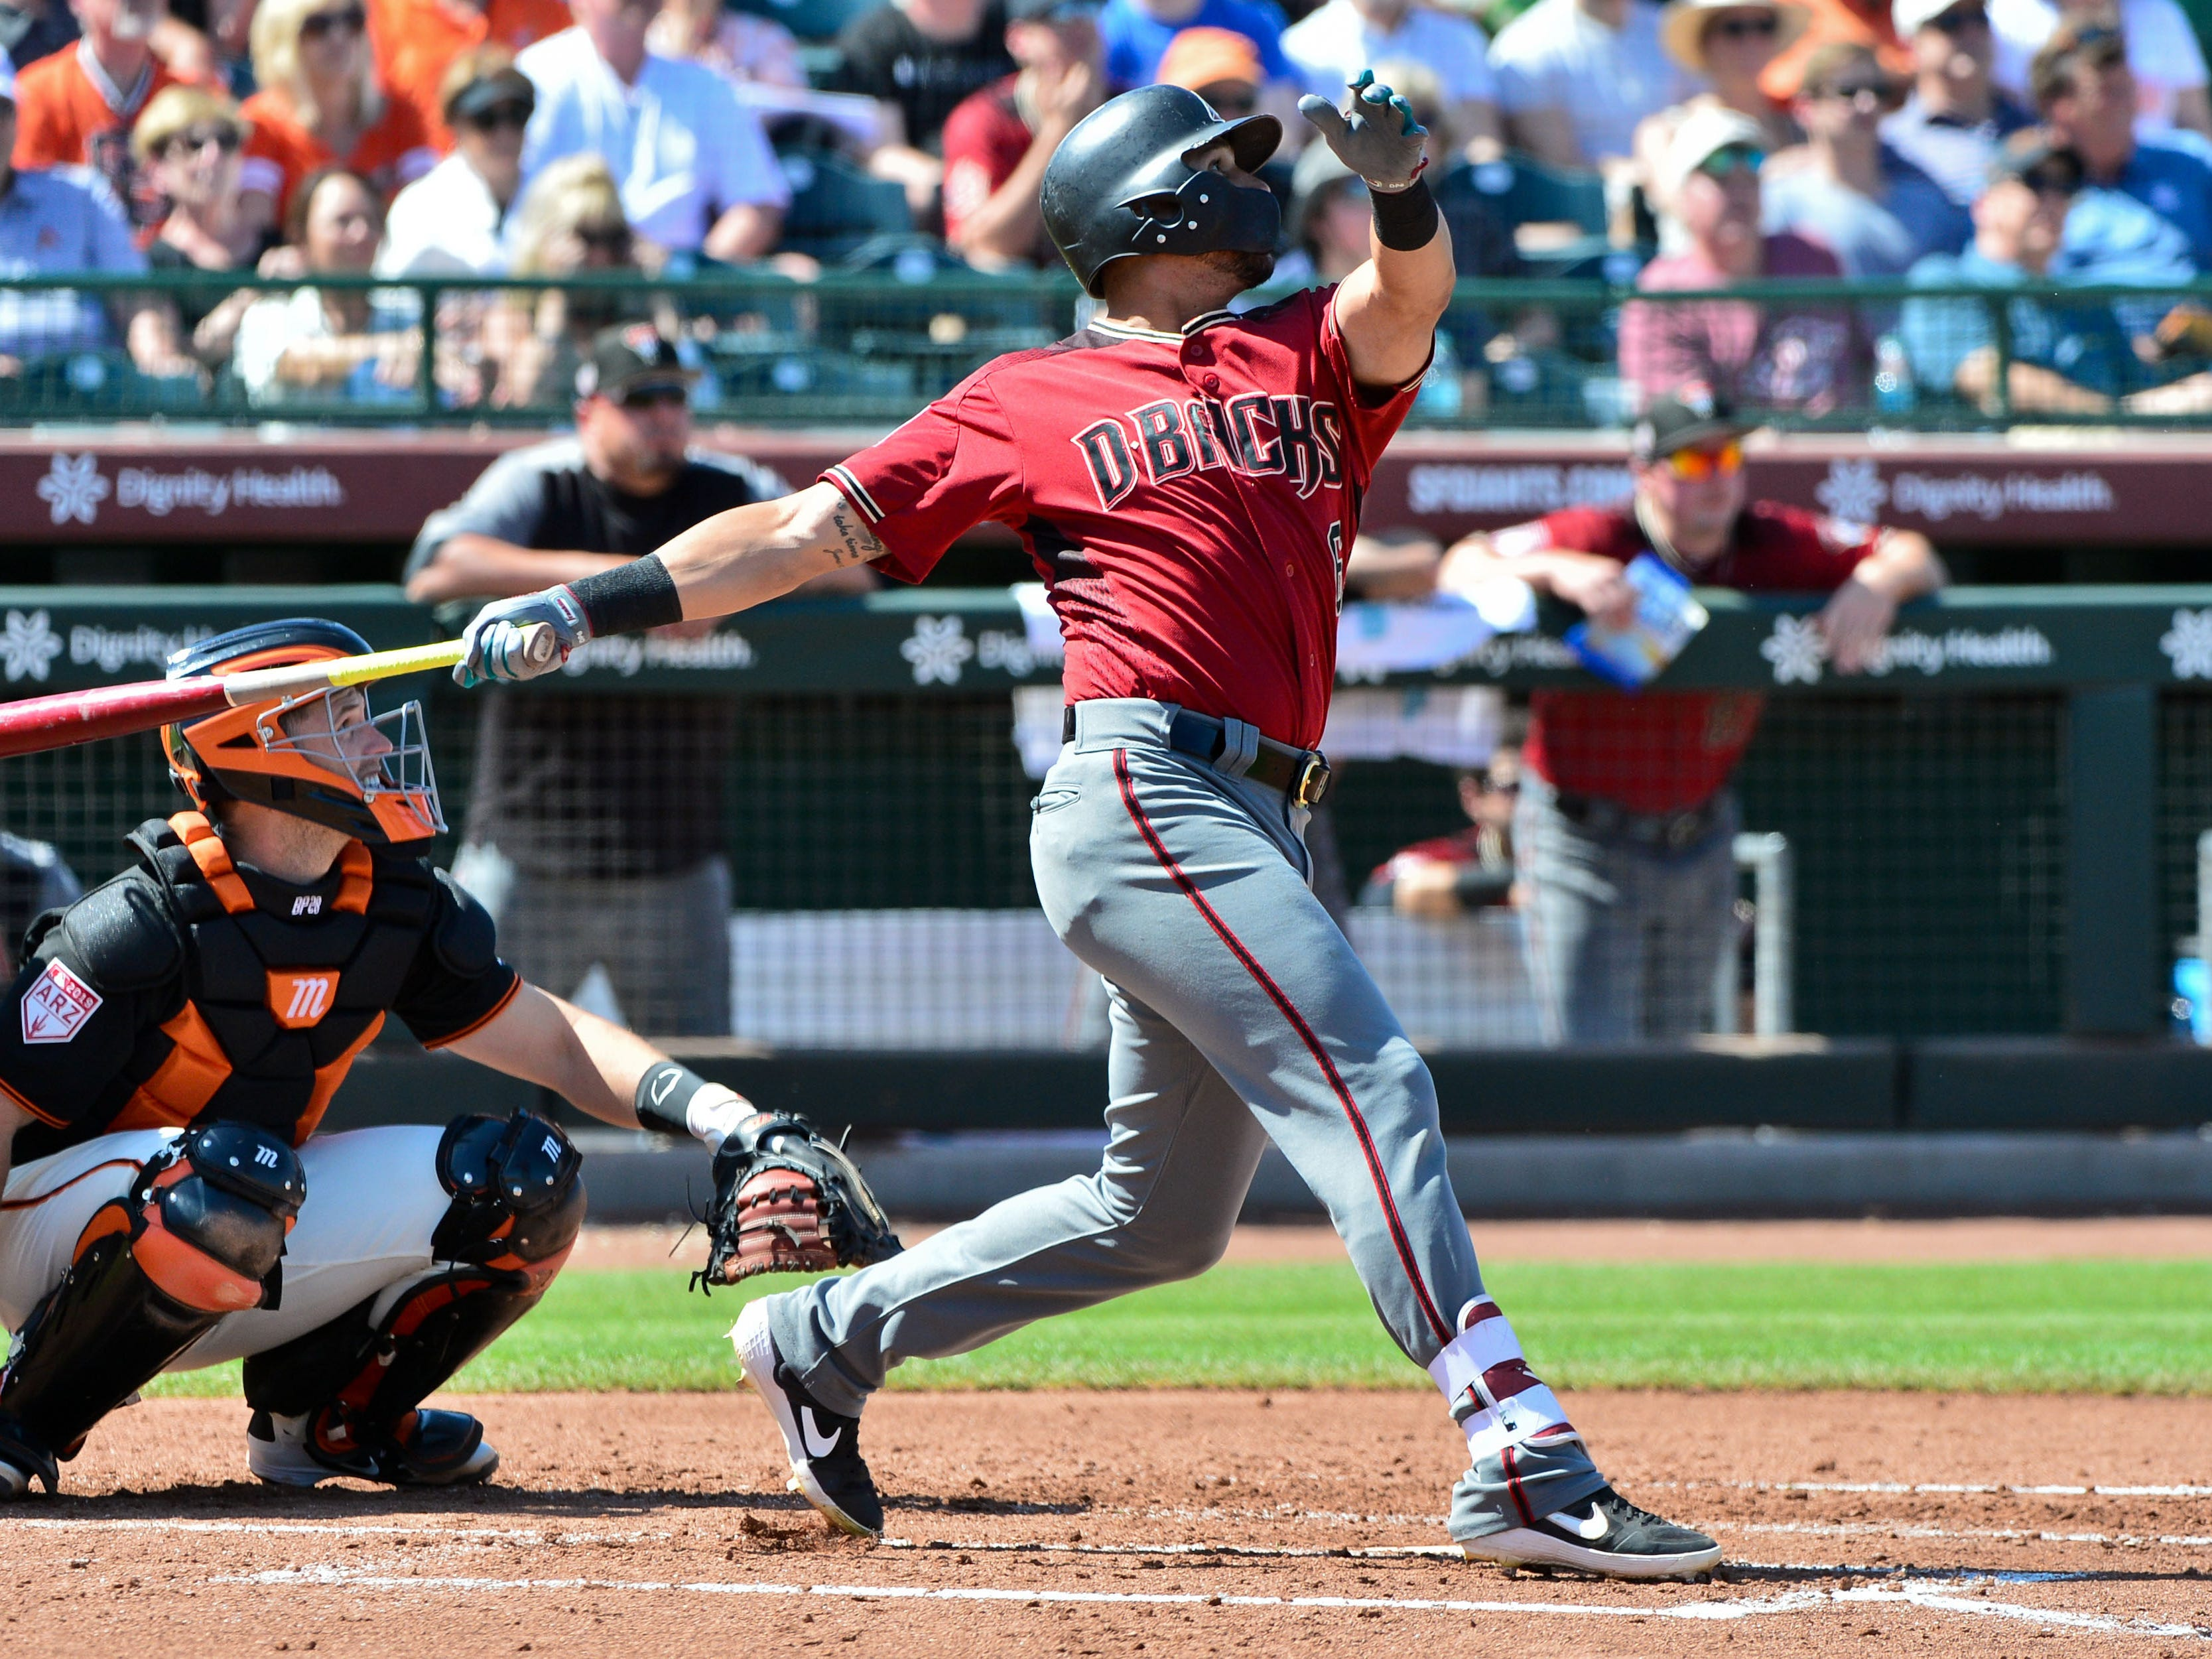 Mar 23, 2019; Scottsdale, AZ, USA; Arizona Diamondbacks right fielder David Peralta (6) hits a solo home run in the third inning against the San Francisco Giants at Scottsdale Stadium.